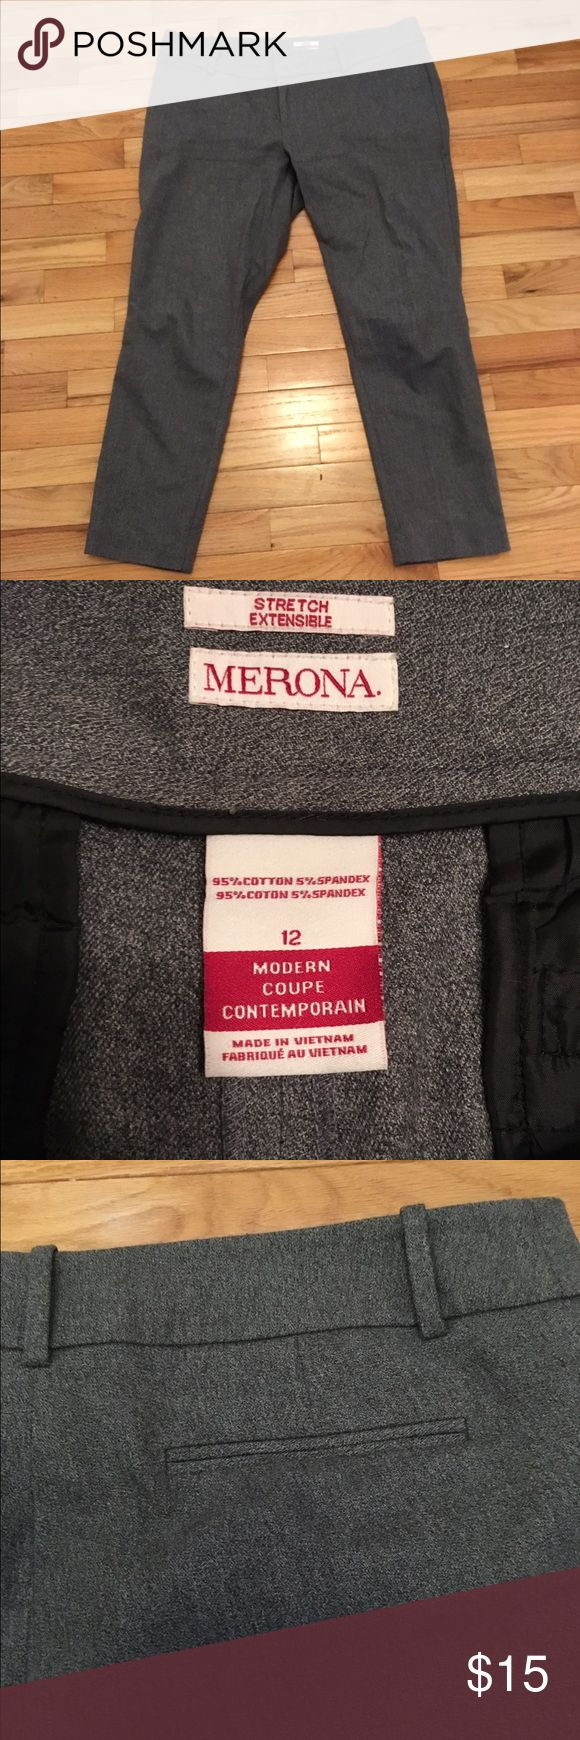 Ankle Length Dress Pants These grey, ankle length dress pants are the perfect weight. Thick but not stiff. Worn a few times to the office, in great condition. Merona Pants Ankle & Cropped